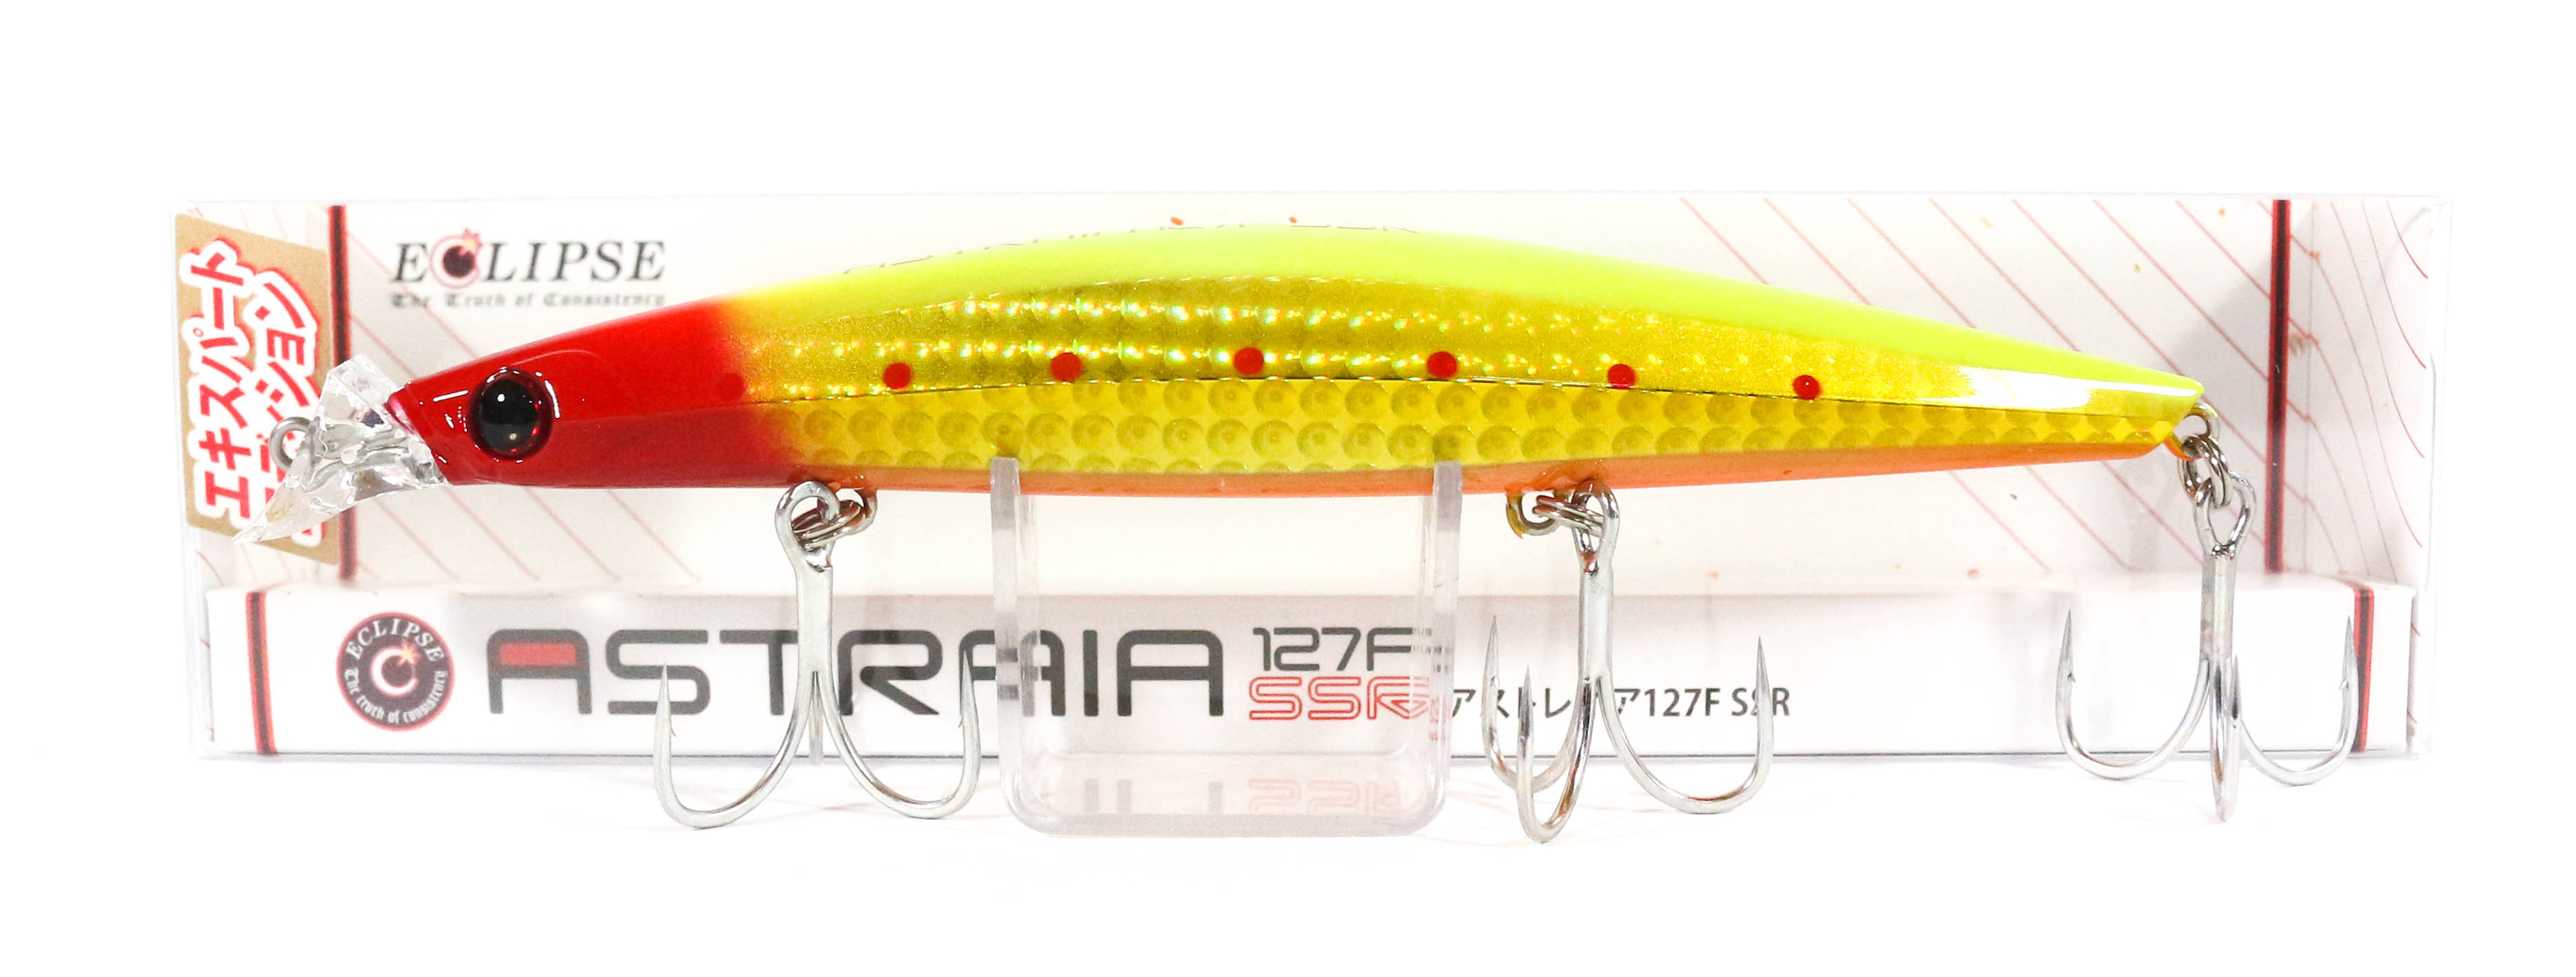 Sale Eclipse Astraia 127F SSR Floating Lure 147 (4269)